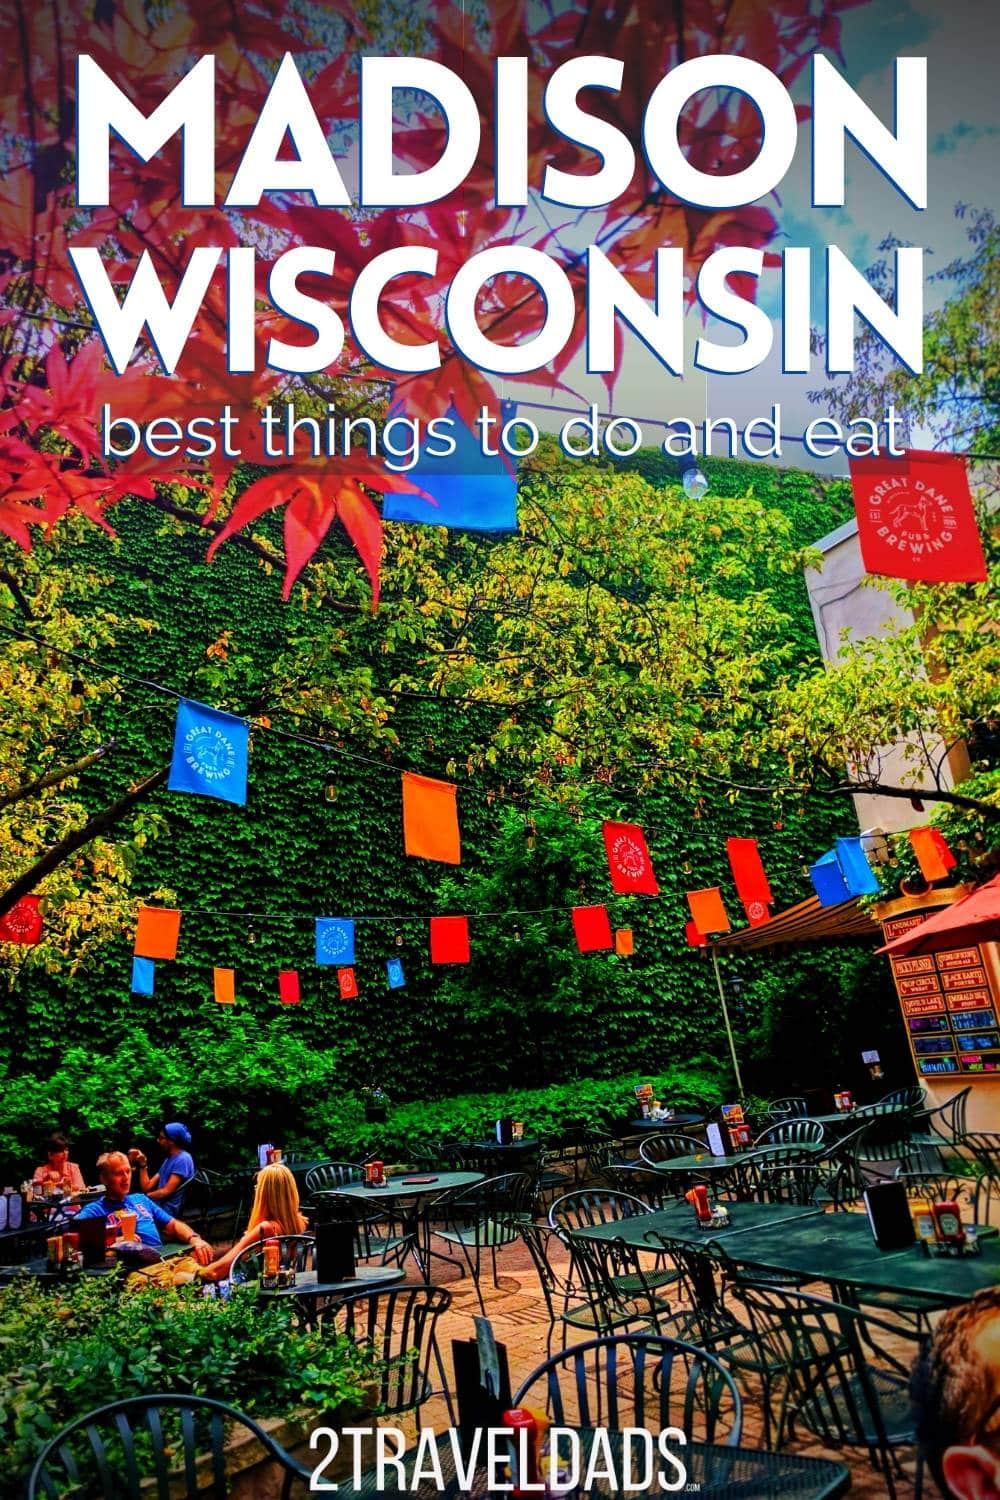 The best things to do in Madison, Wisconsin in summer, including downtown, museums and nature. Recommendations for where to eat, best beers and fun things to do with kids in Madison.